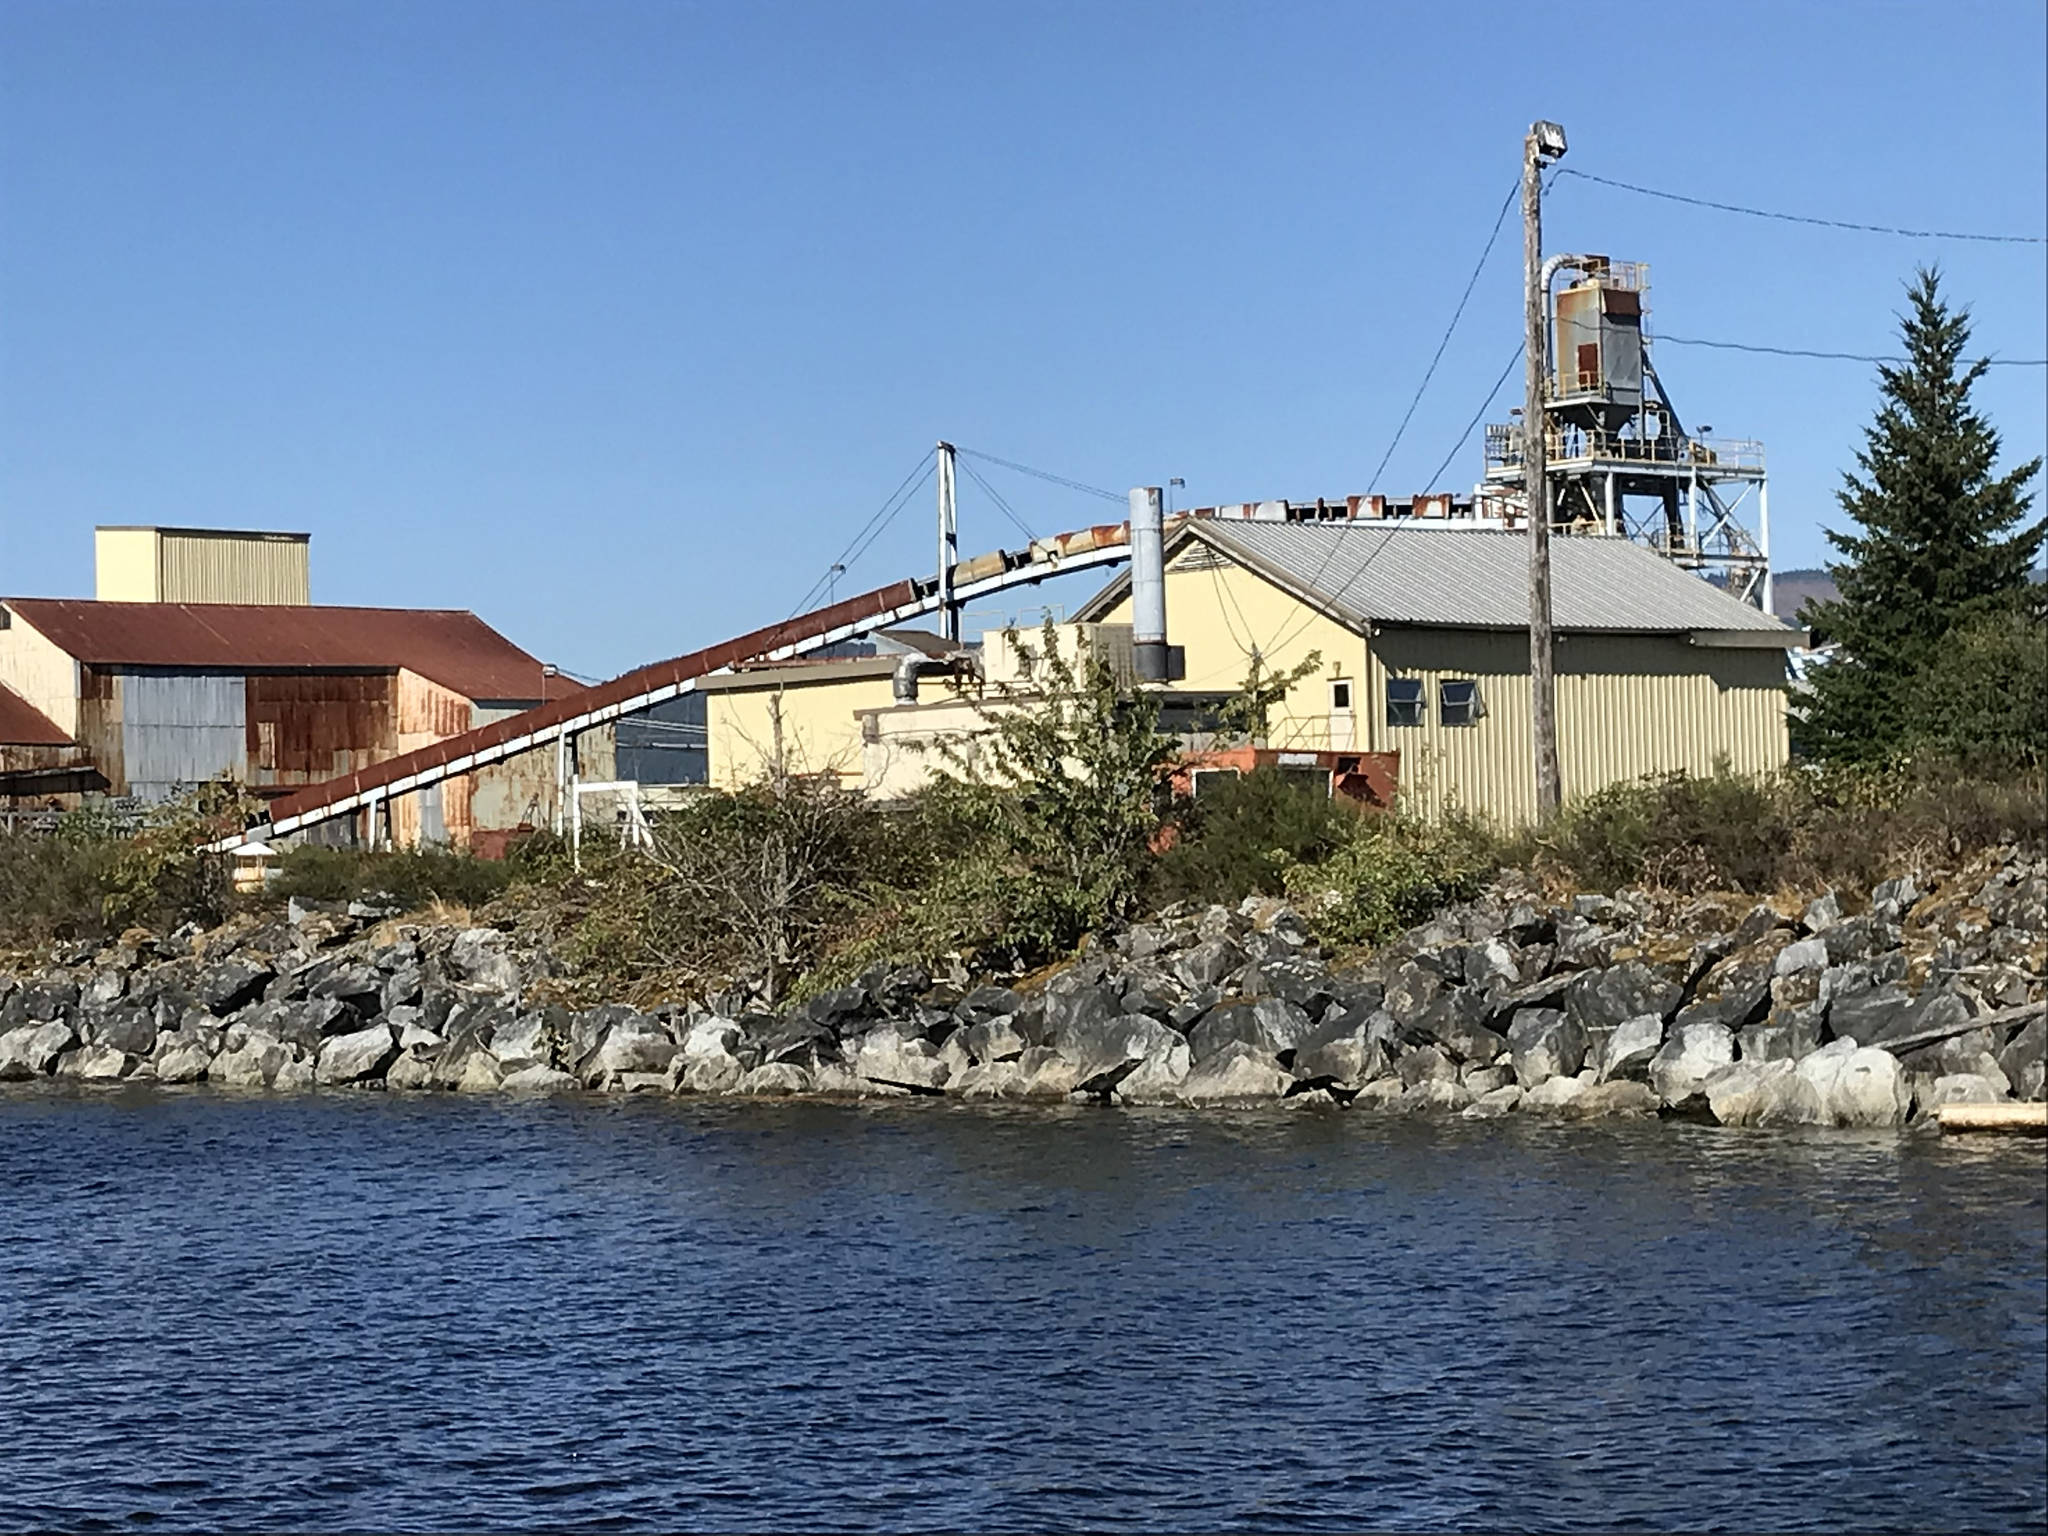 Port Alberni's city council envisions public access to the waterfront with a Quay to Quay pathway and multi-use land where Somass Sawmill has been for nearly a century. (SUSAN QUINN/ Alberni Valley News)